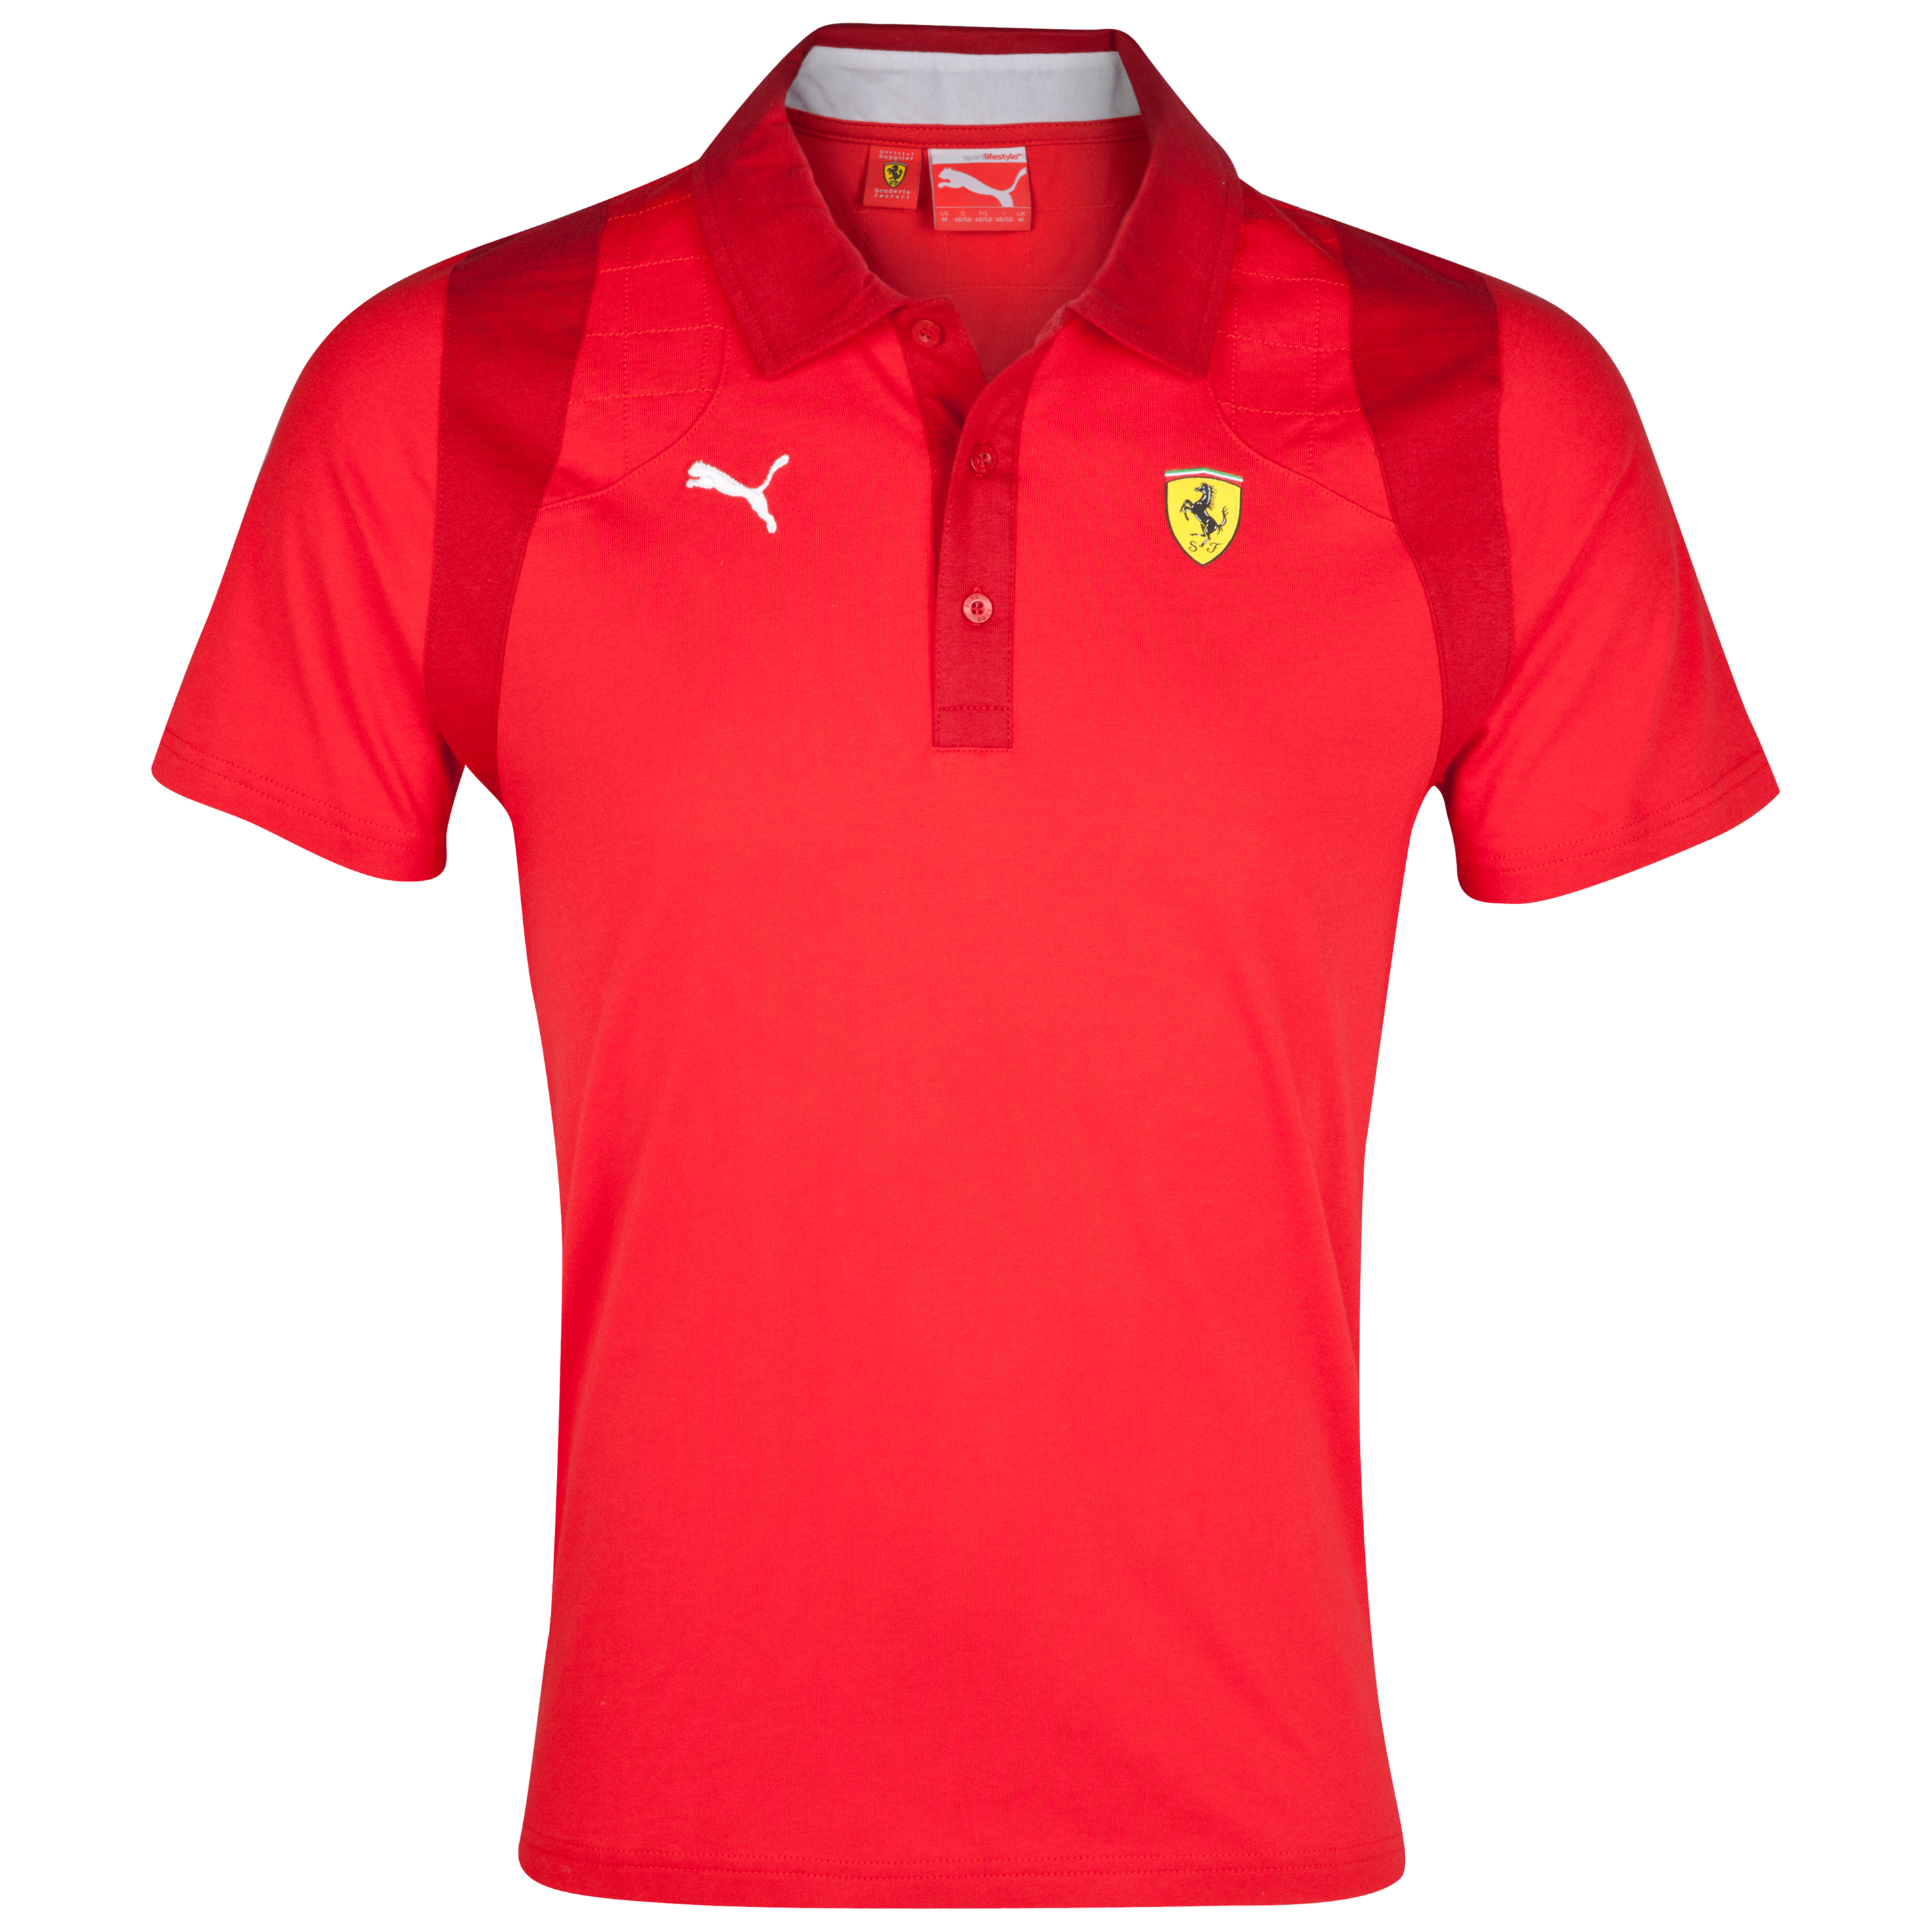 Scuderia Ferrari Polo - SFRosso Corsa